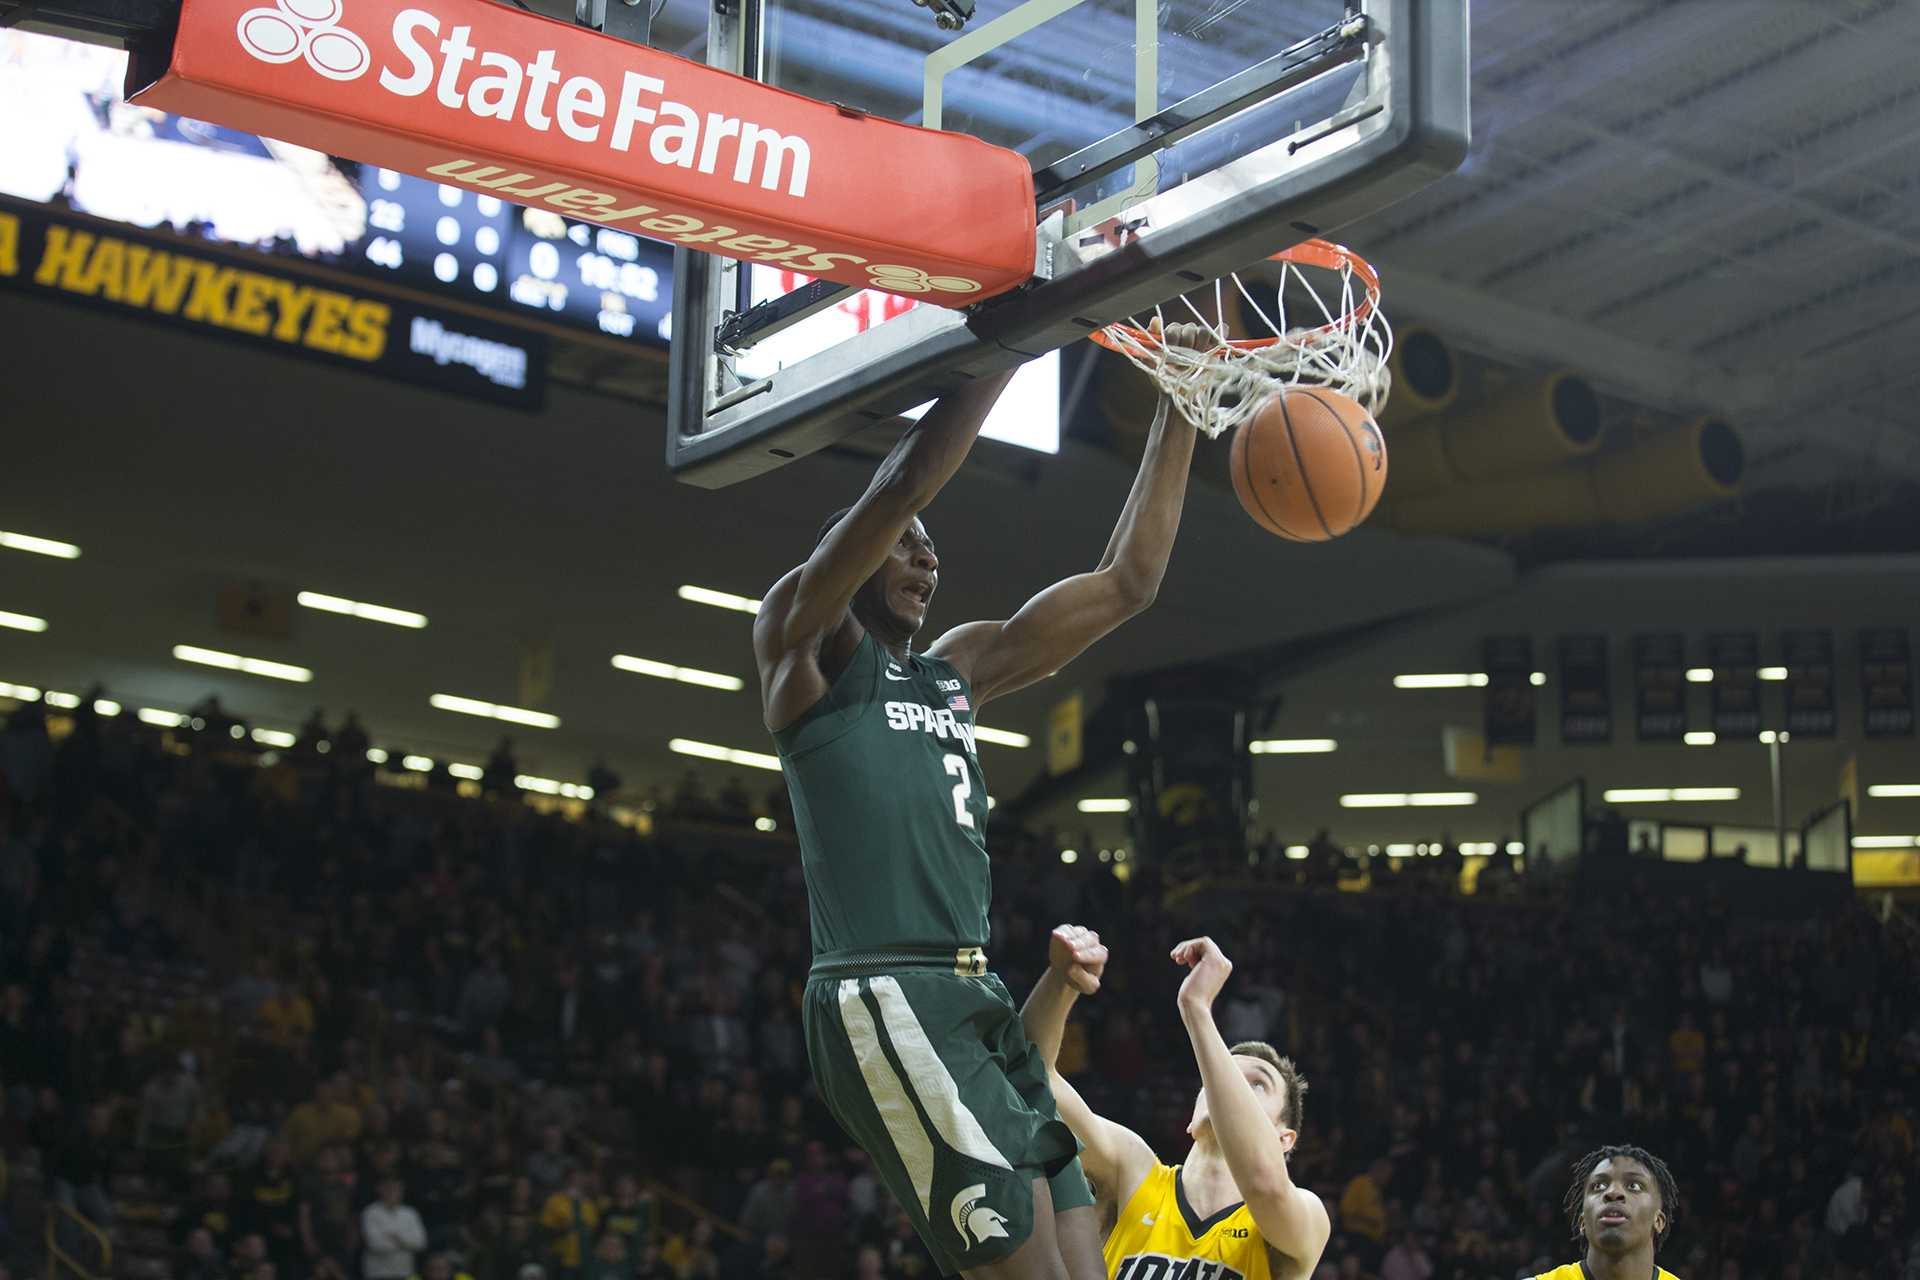 Michigan State F Jaren Jackson dunks a ball during a basketball game between Iowa and Michigan State at Carver-Hawkeye Arena on Tuesday, Feb. 6, 2018. The Hawkeyes were defeated by the visiting Spartans, 96-93. (Shivansh Ahuja/The Daily Iowan)